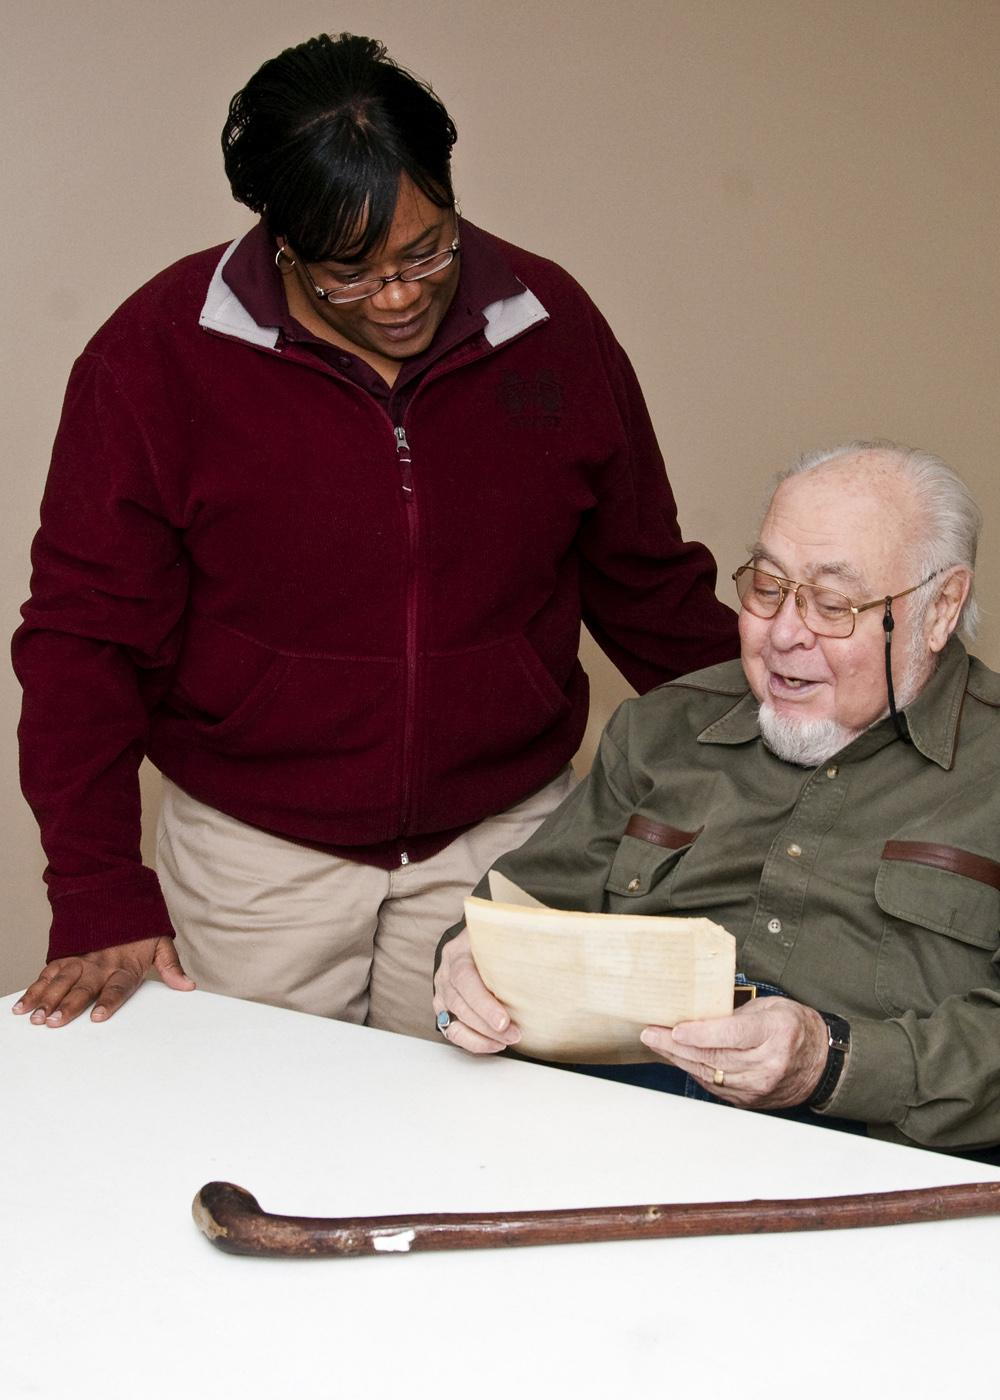 Clay County 4-H agent Fran Brock and volunteer leader Norman Armstrong look over one of his old scripts from a radio program he did as a member and leader to promote 4-H involvement. (Photo by MSU Ag Communications/Scott Corey)